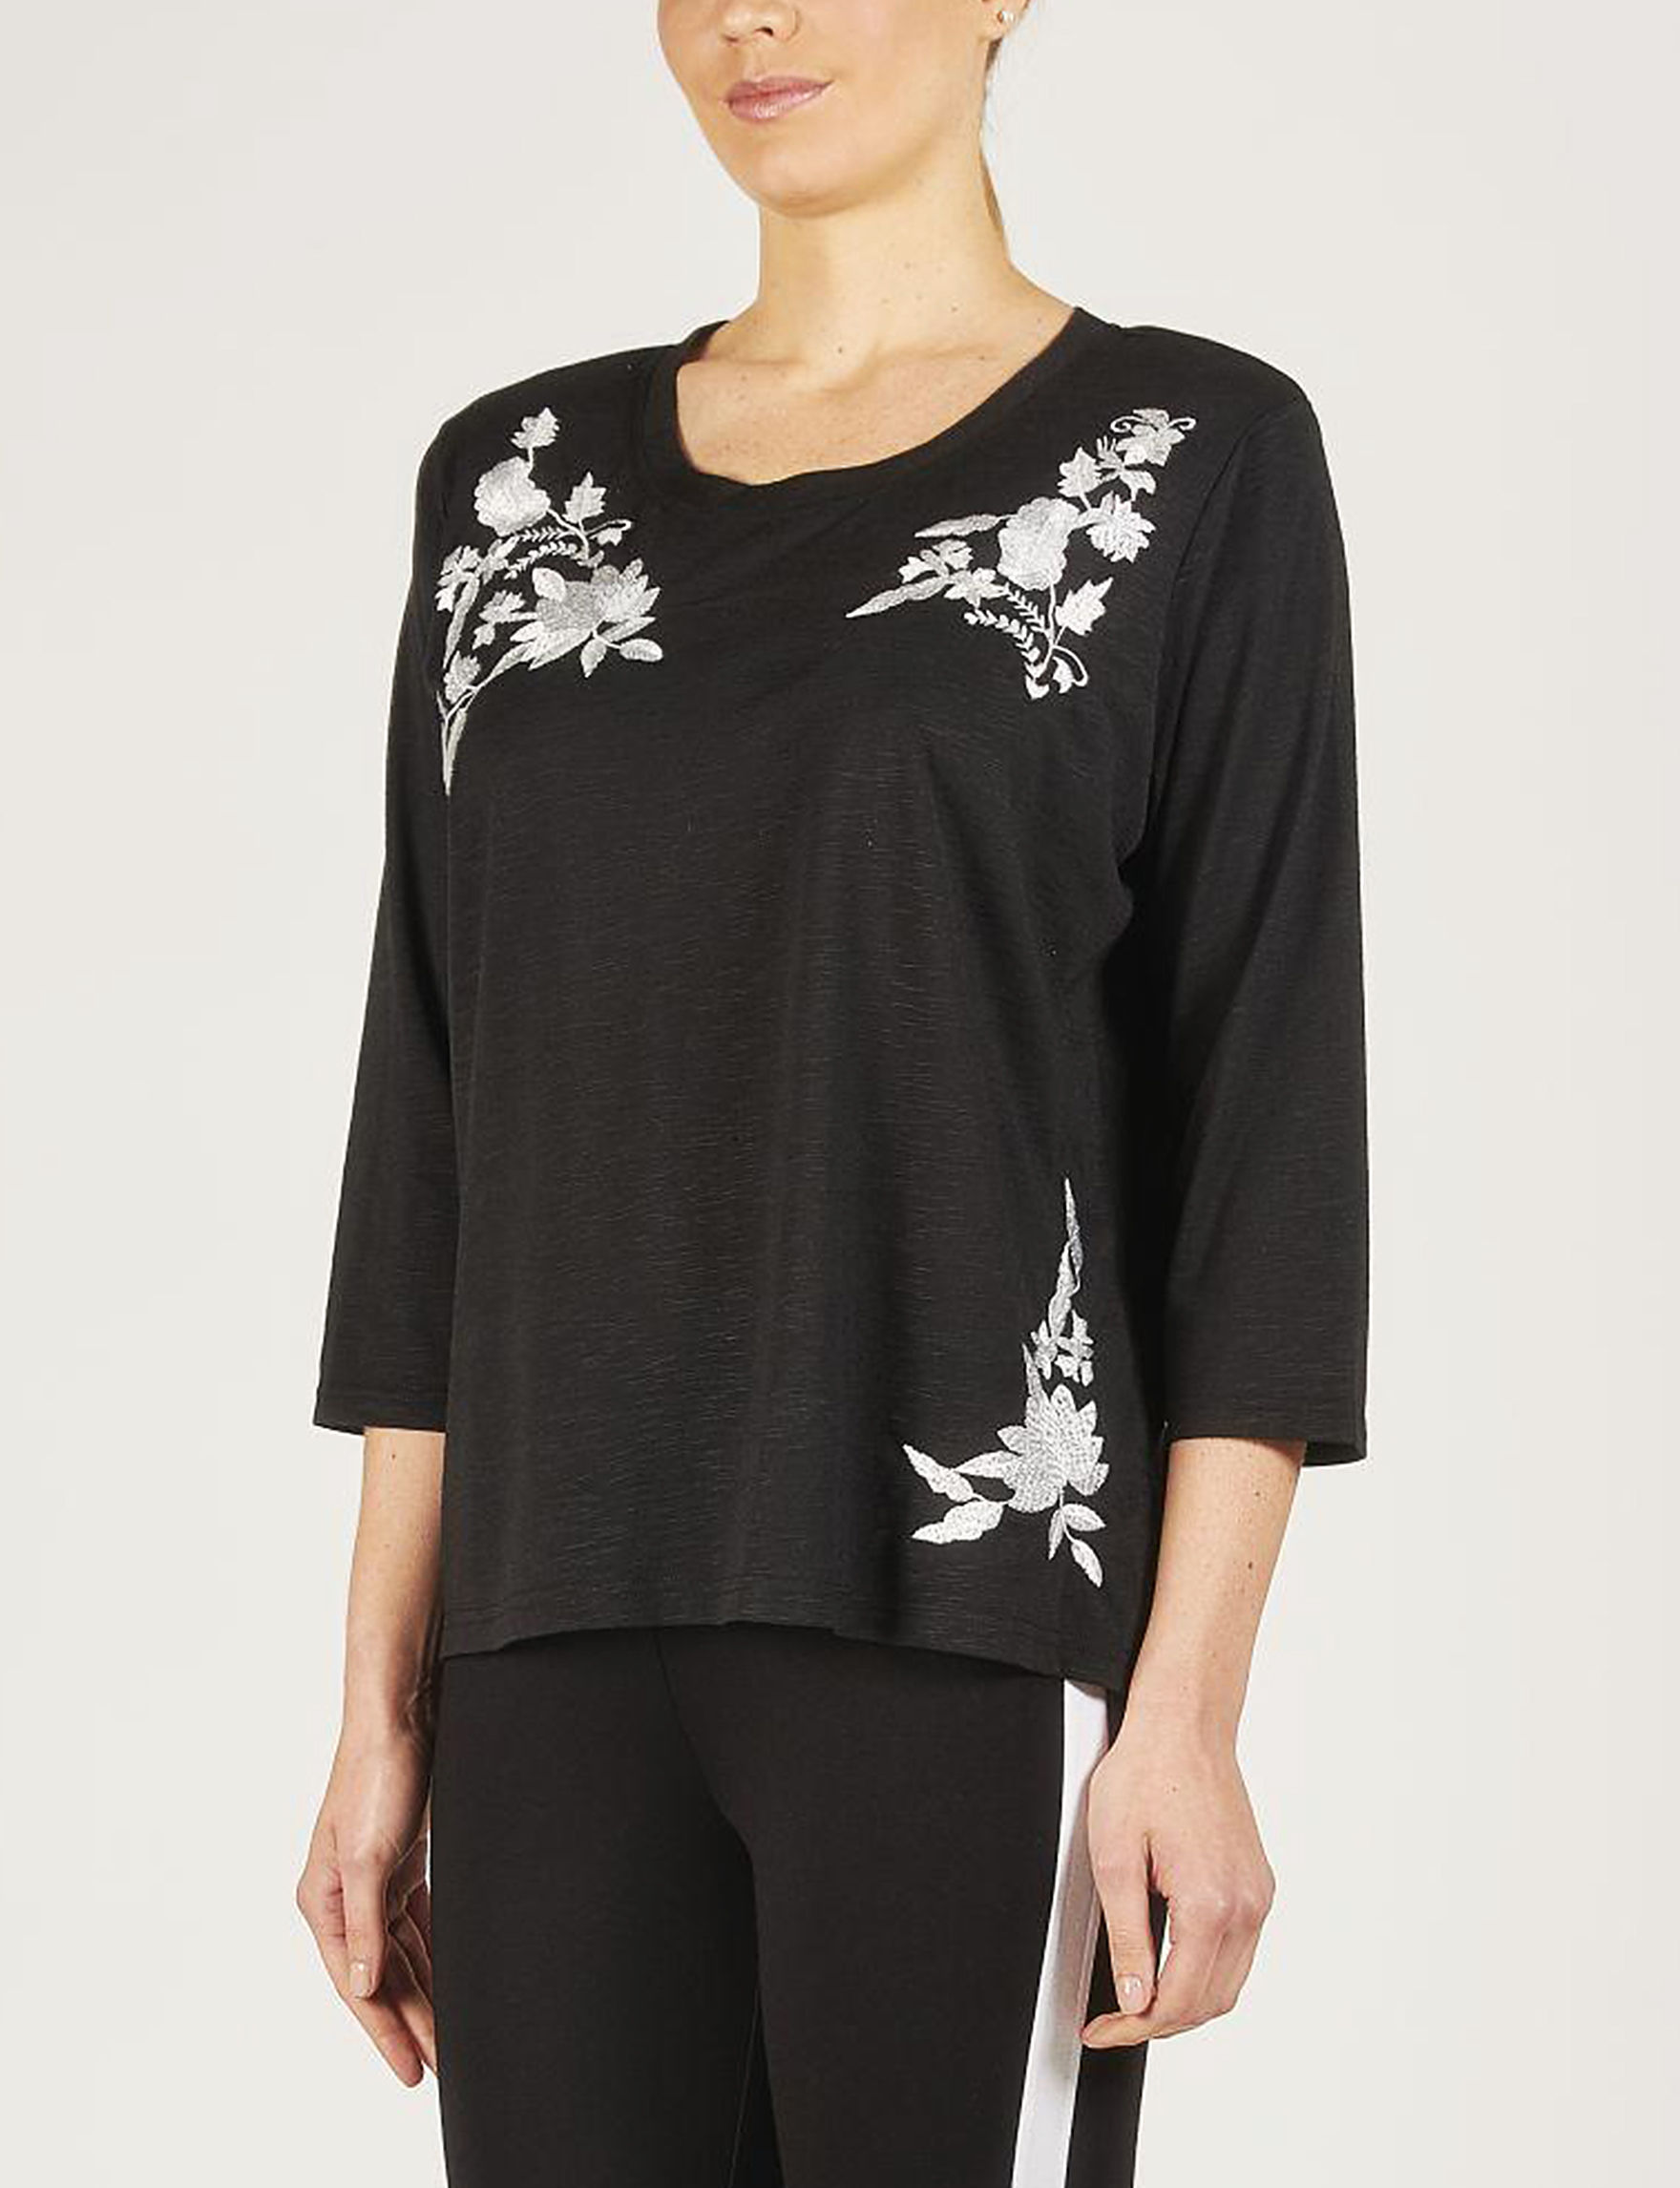 Skyes The Limit Black / White / Floral Shirts & Blouses